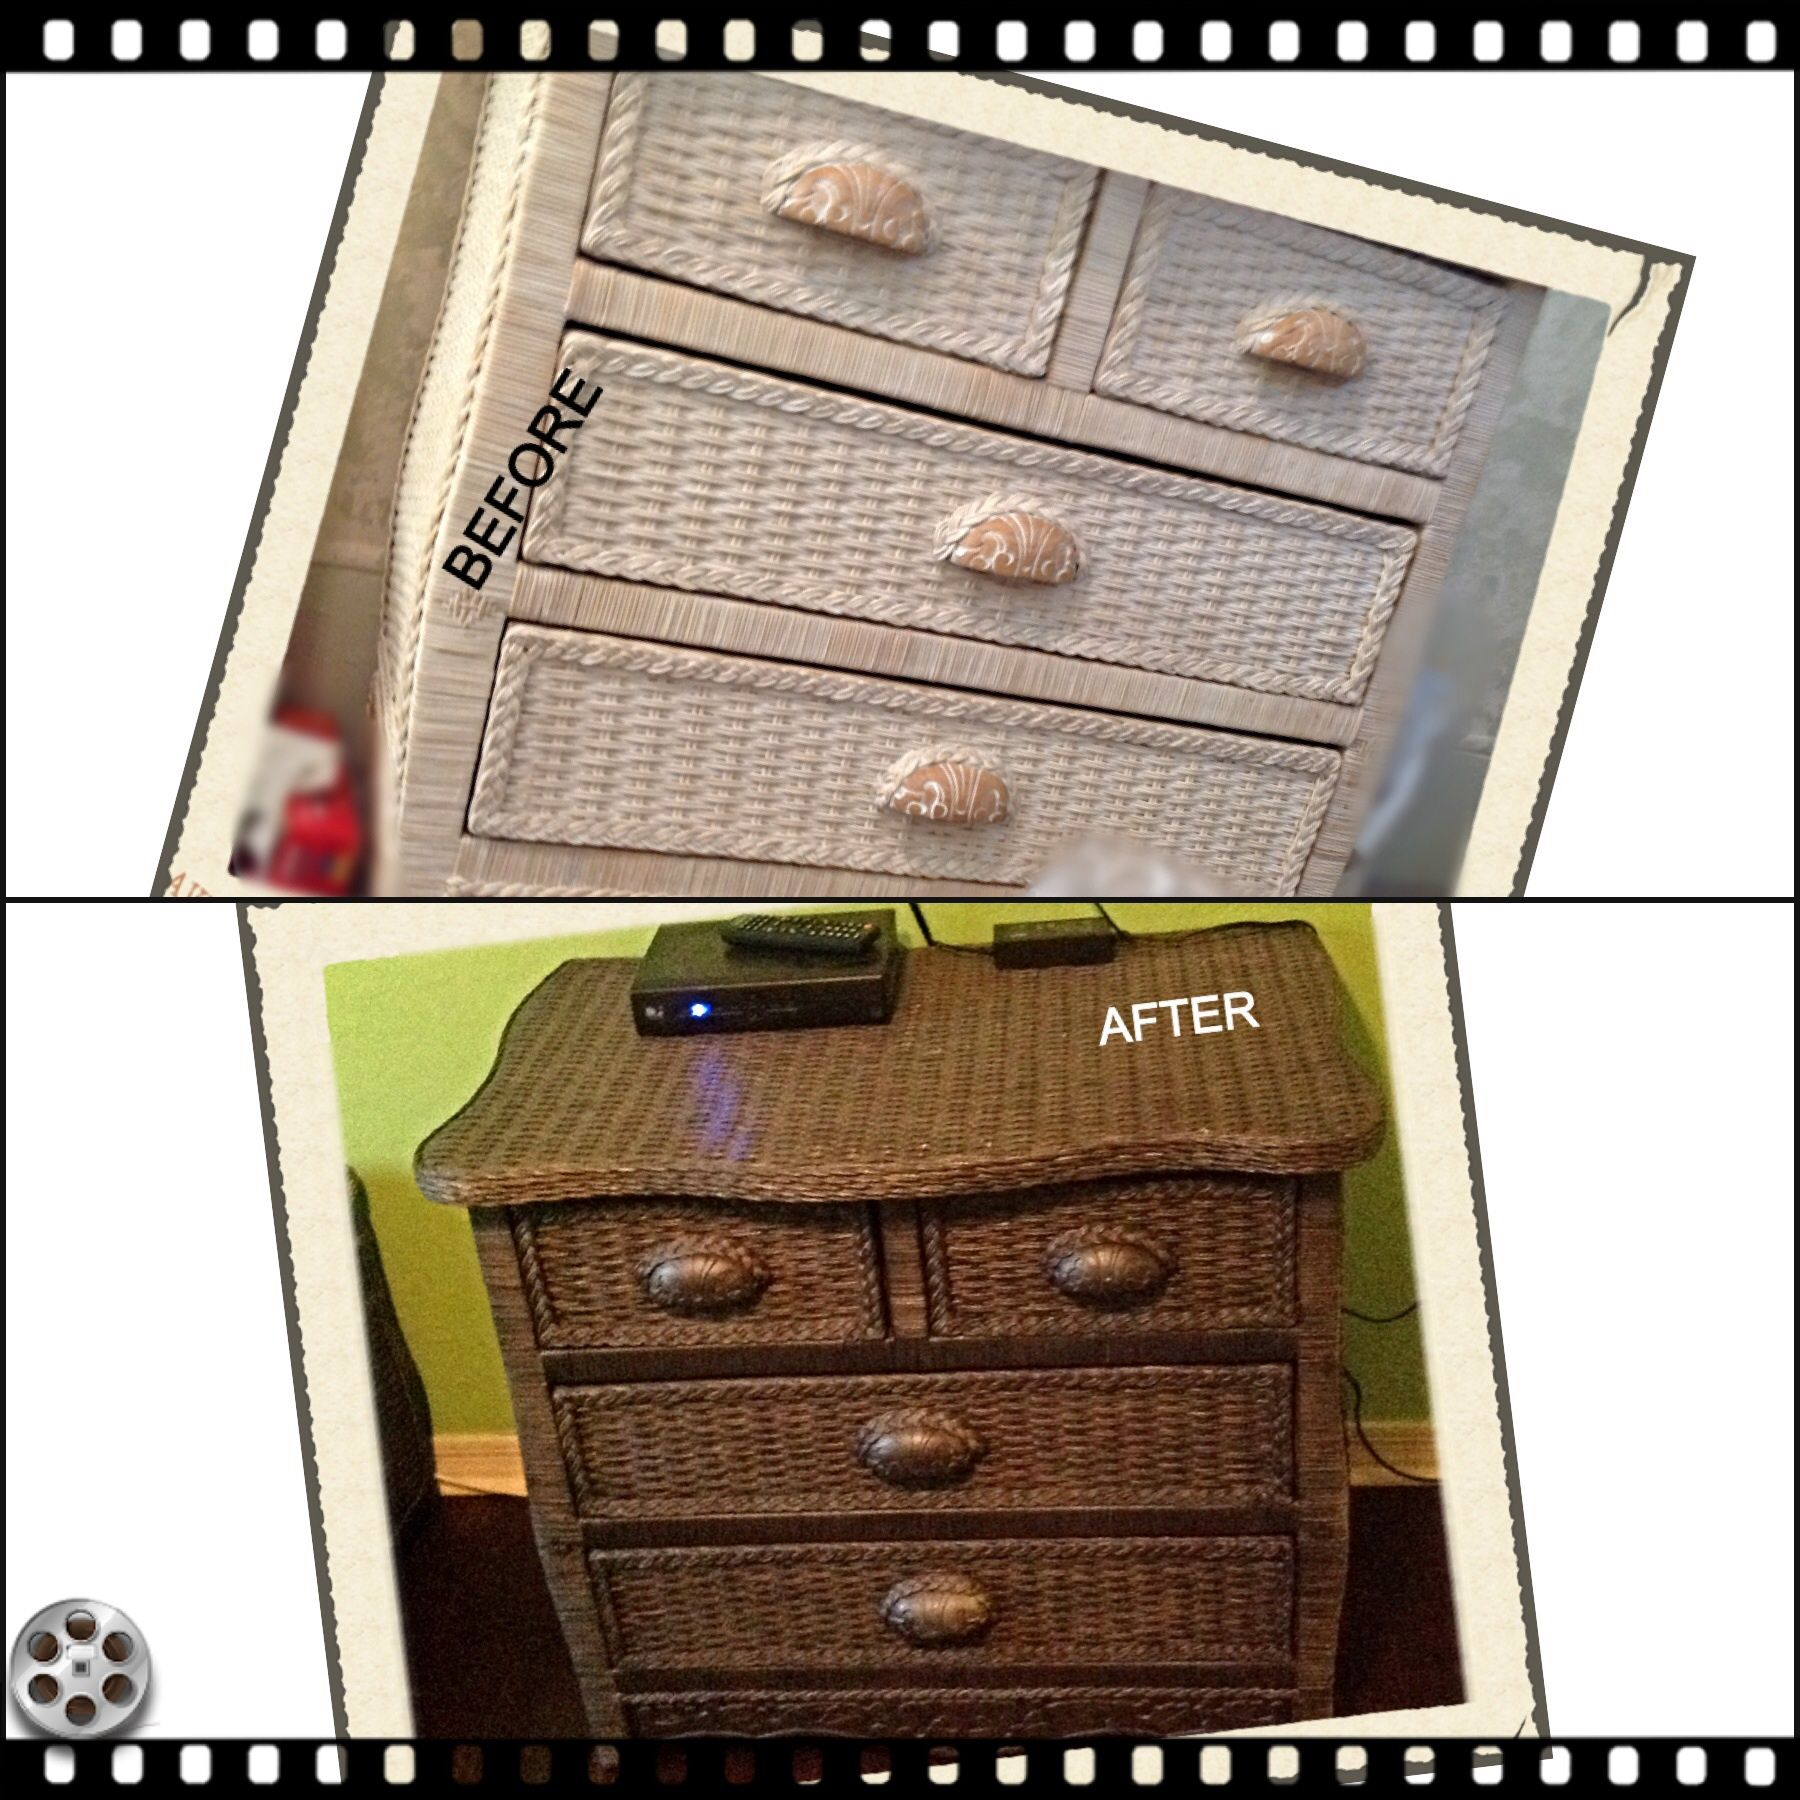 Rattan Bedroom Sets Asian Paints Bedroom Colours Combination Bedroom Renovation French Style Bedroom Chairs: 4 Drawer Wicker Dresser Dressed Up!